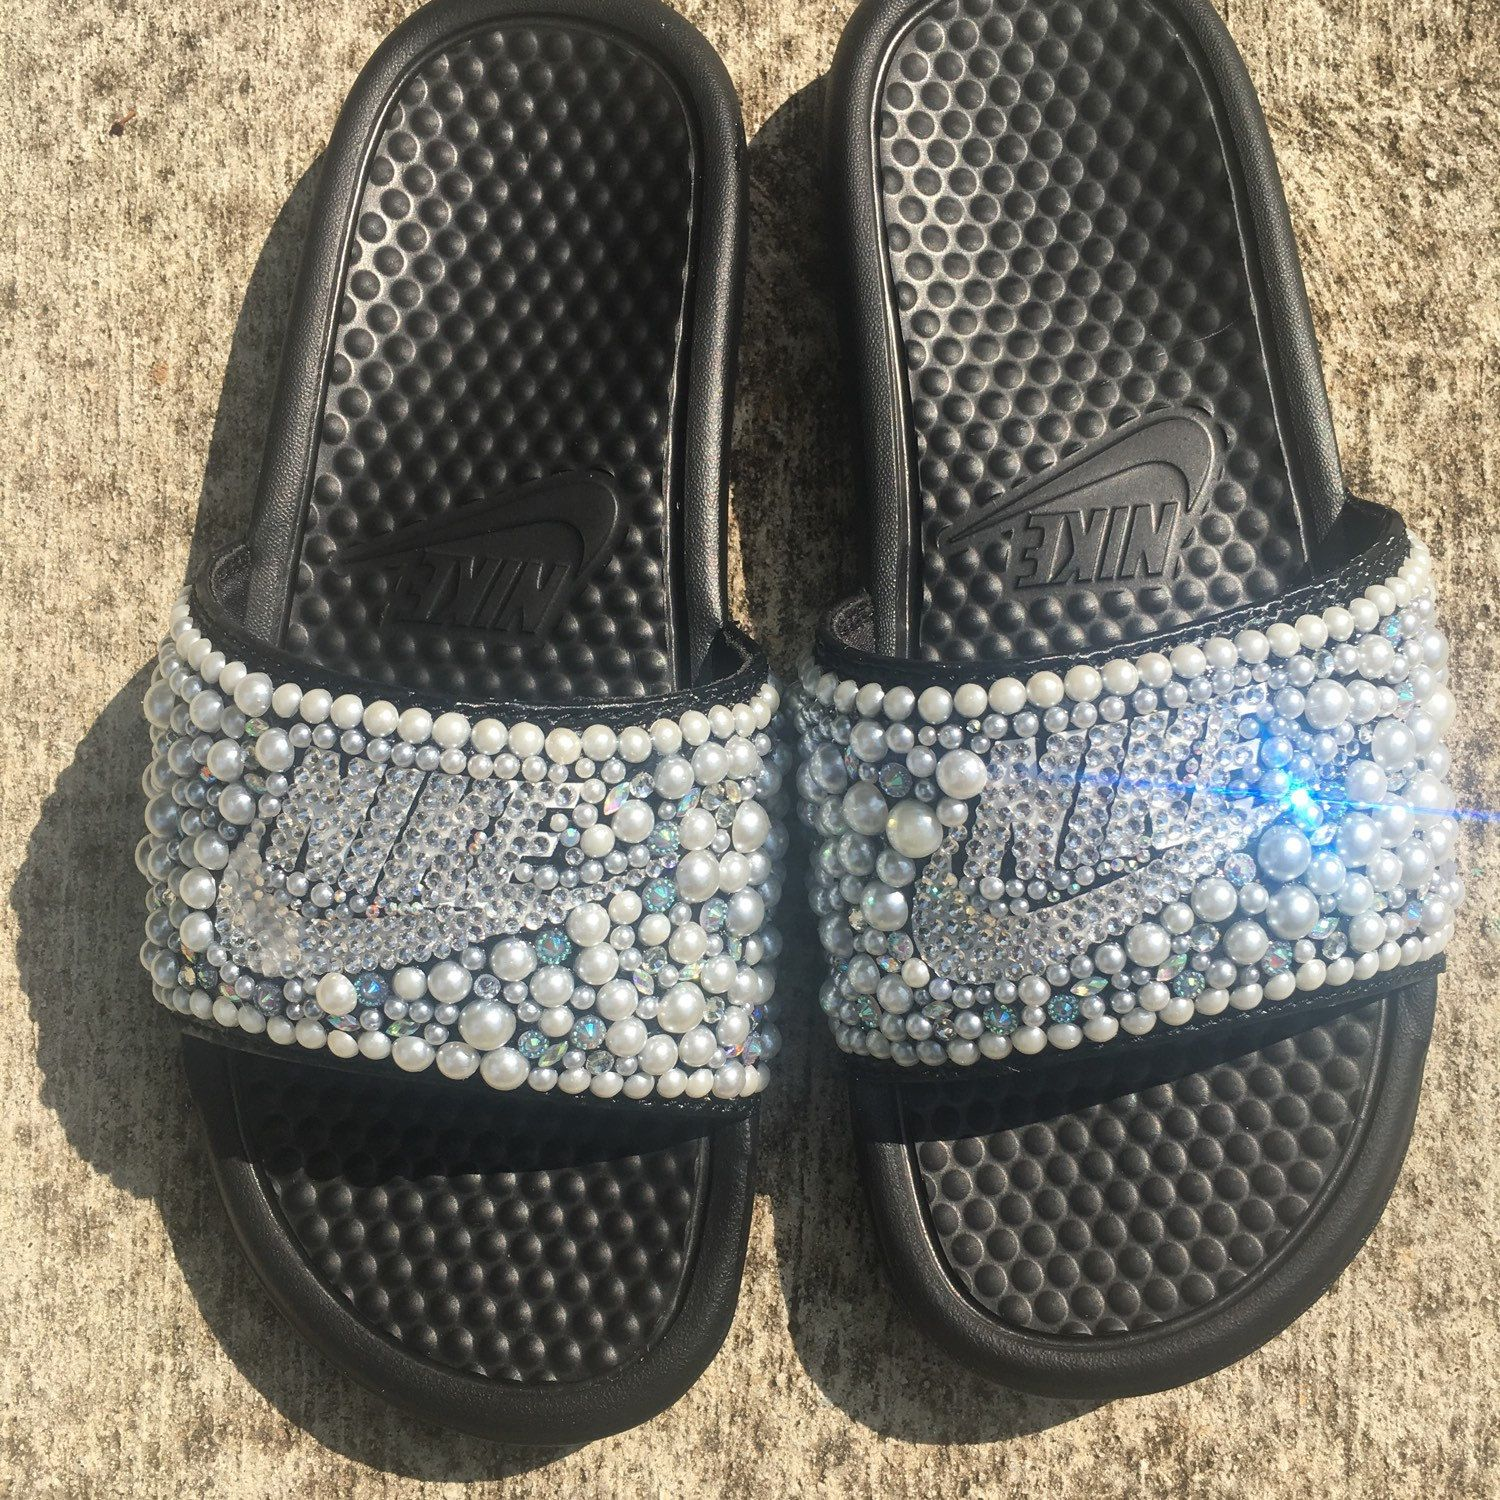 911ba1ac8 Black pearl bedazzle Nike Slides Available NOW and for only 45.00. That is  correct 45.00